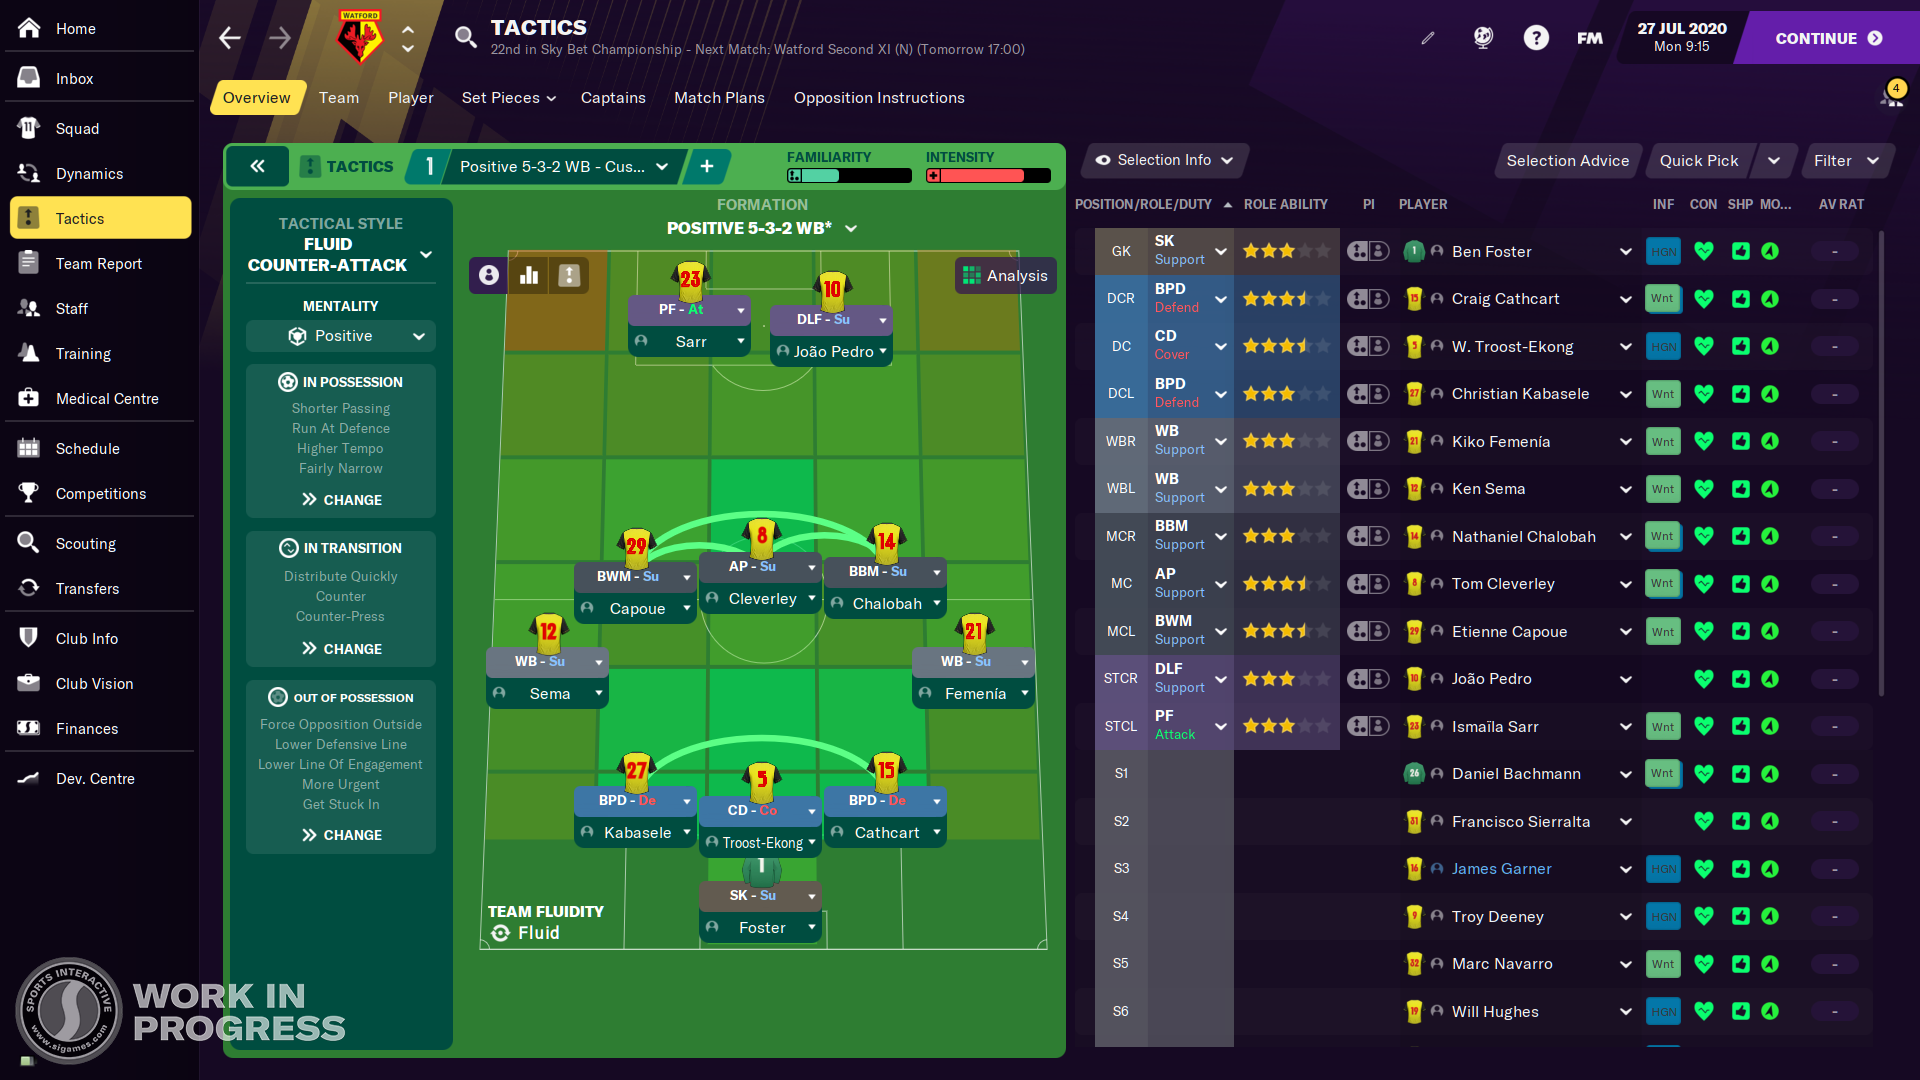 Football Manager 2021 knows just what to change and what to leave alone